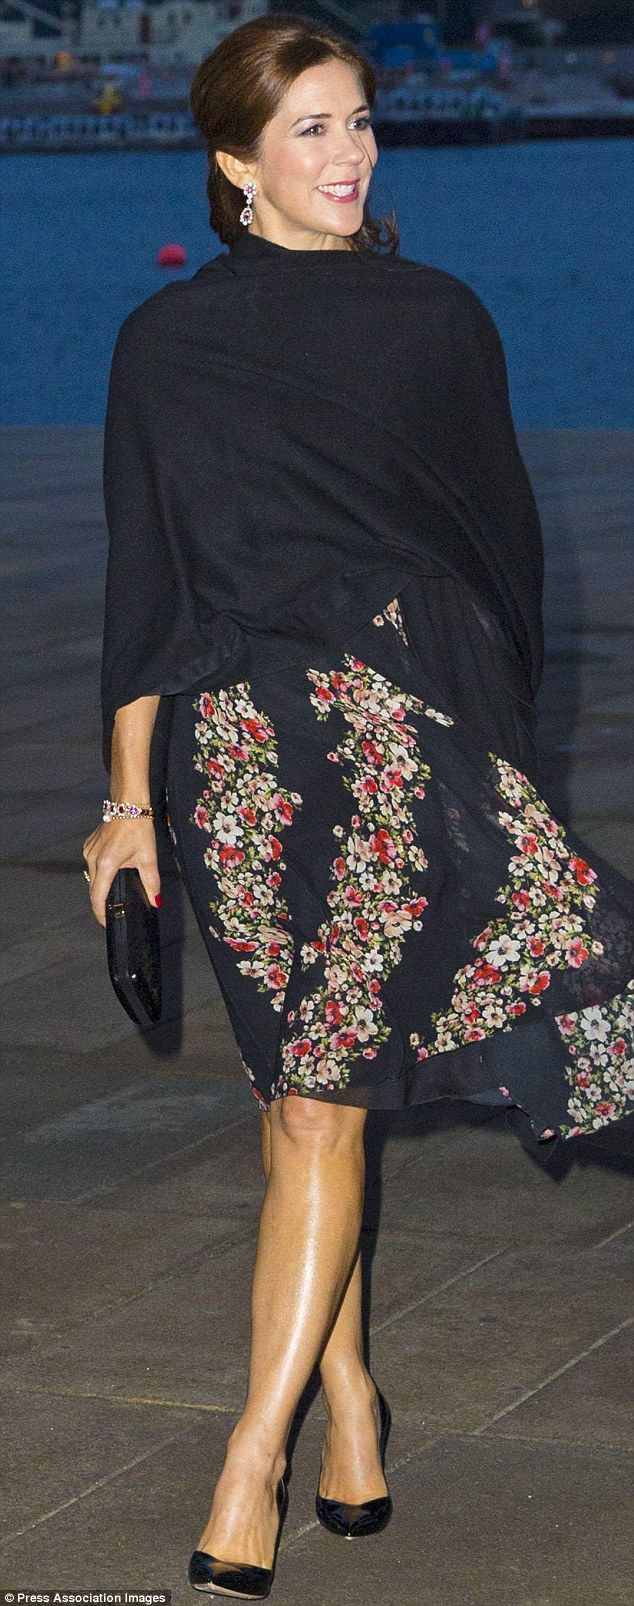 Crown Princess Mary of Denmark wearing Dolce & Gabbana recently at celebrations marking the 400th anniversary of the Danish Army.